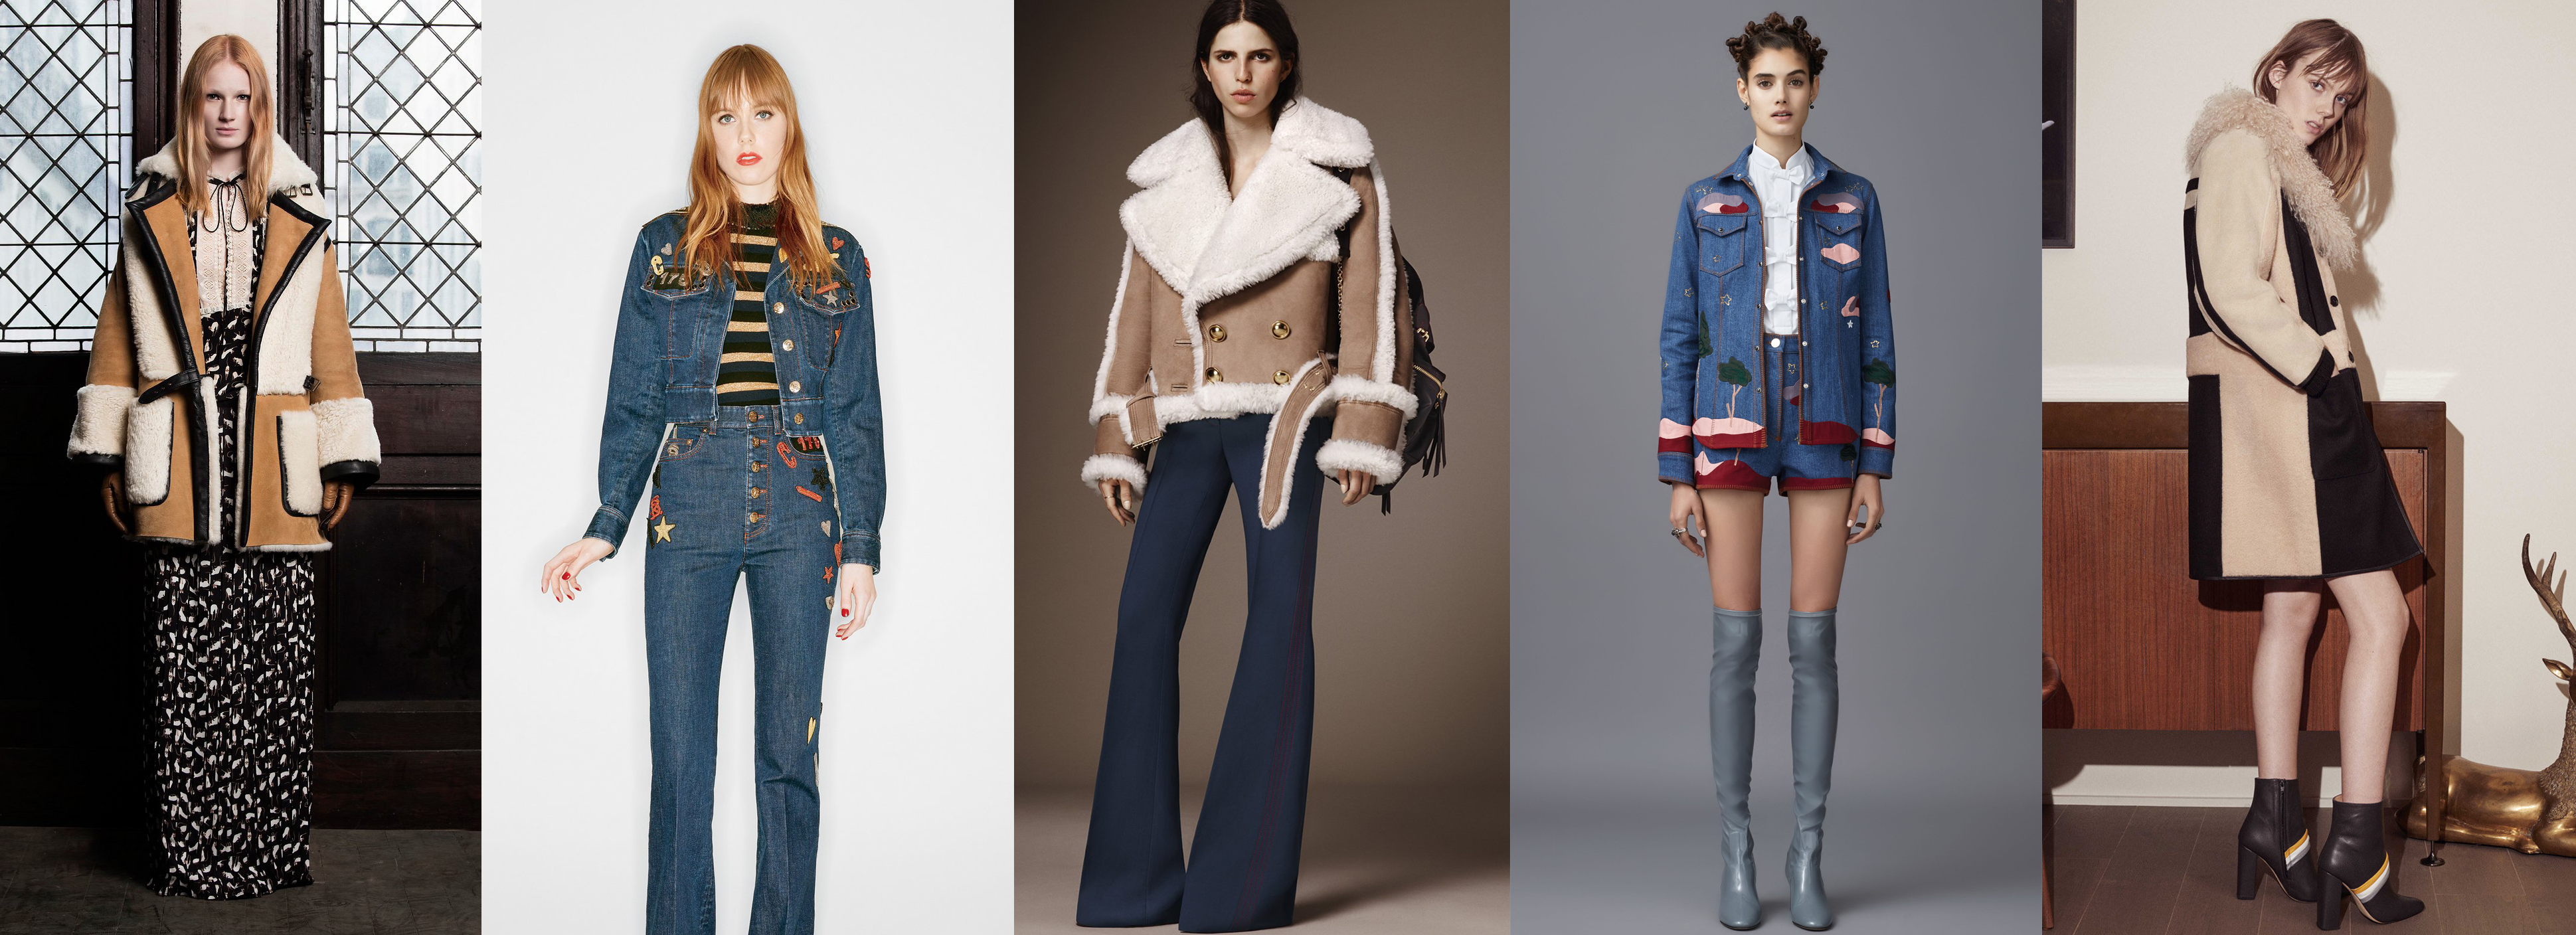 Fashion trends for fall - 70s Style 2016 Fashion Trends Pre Fall 2016